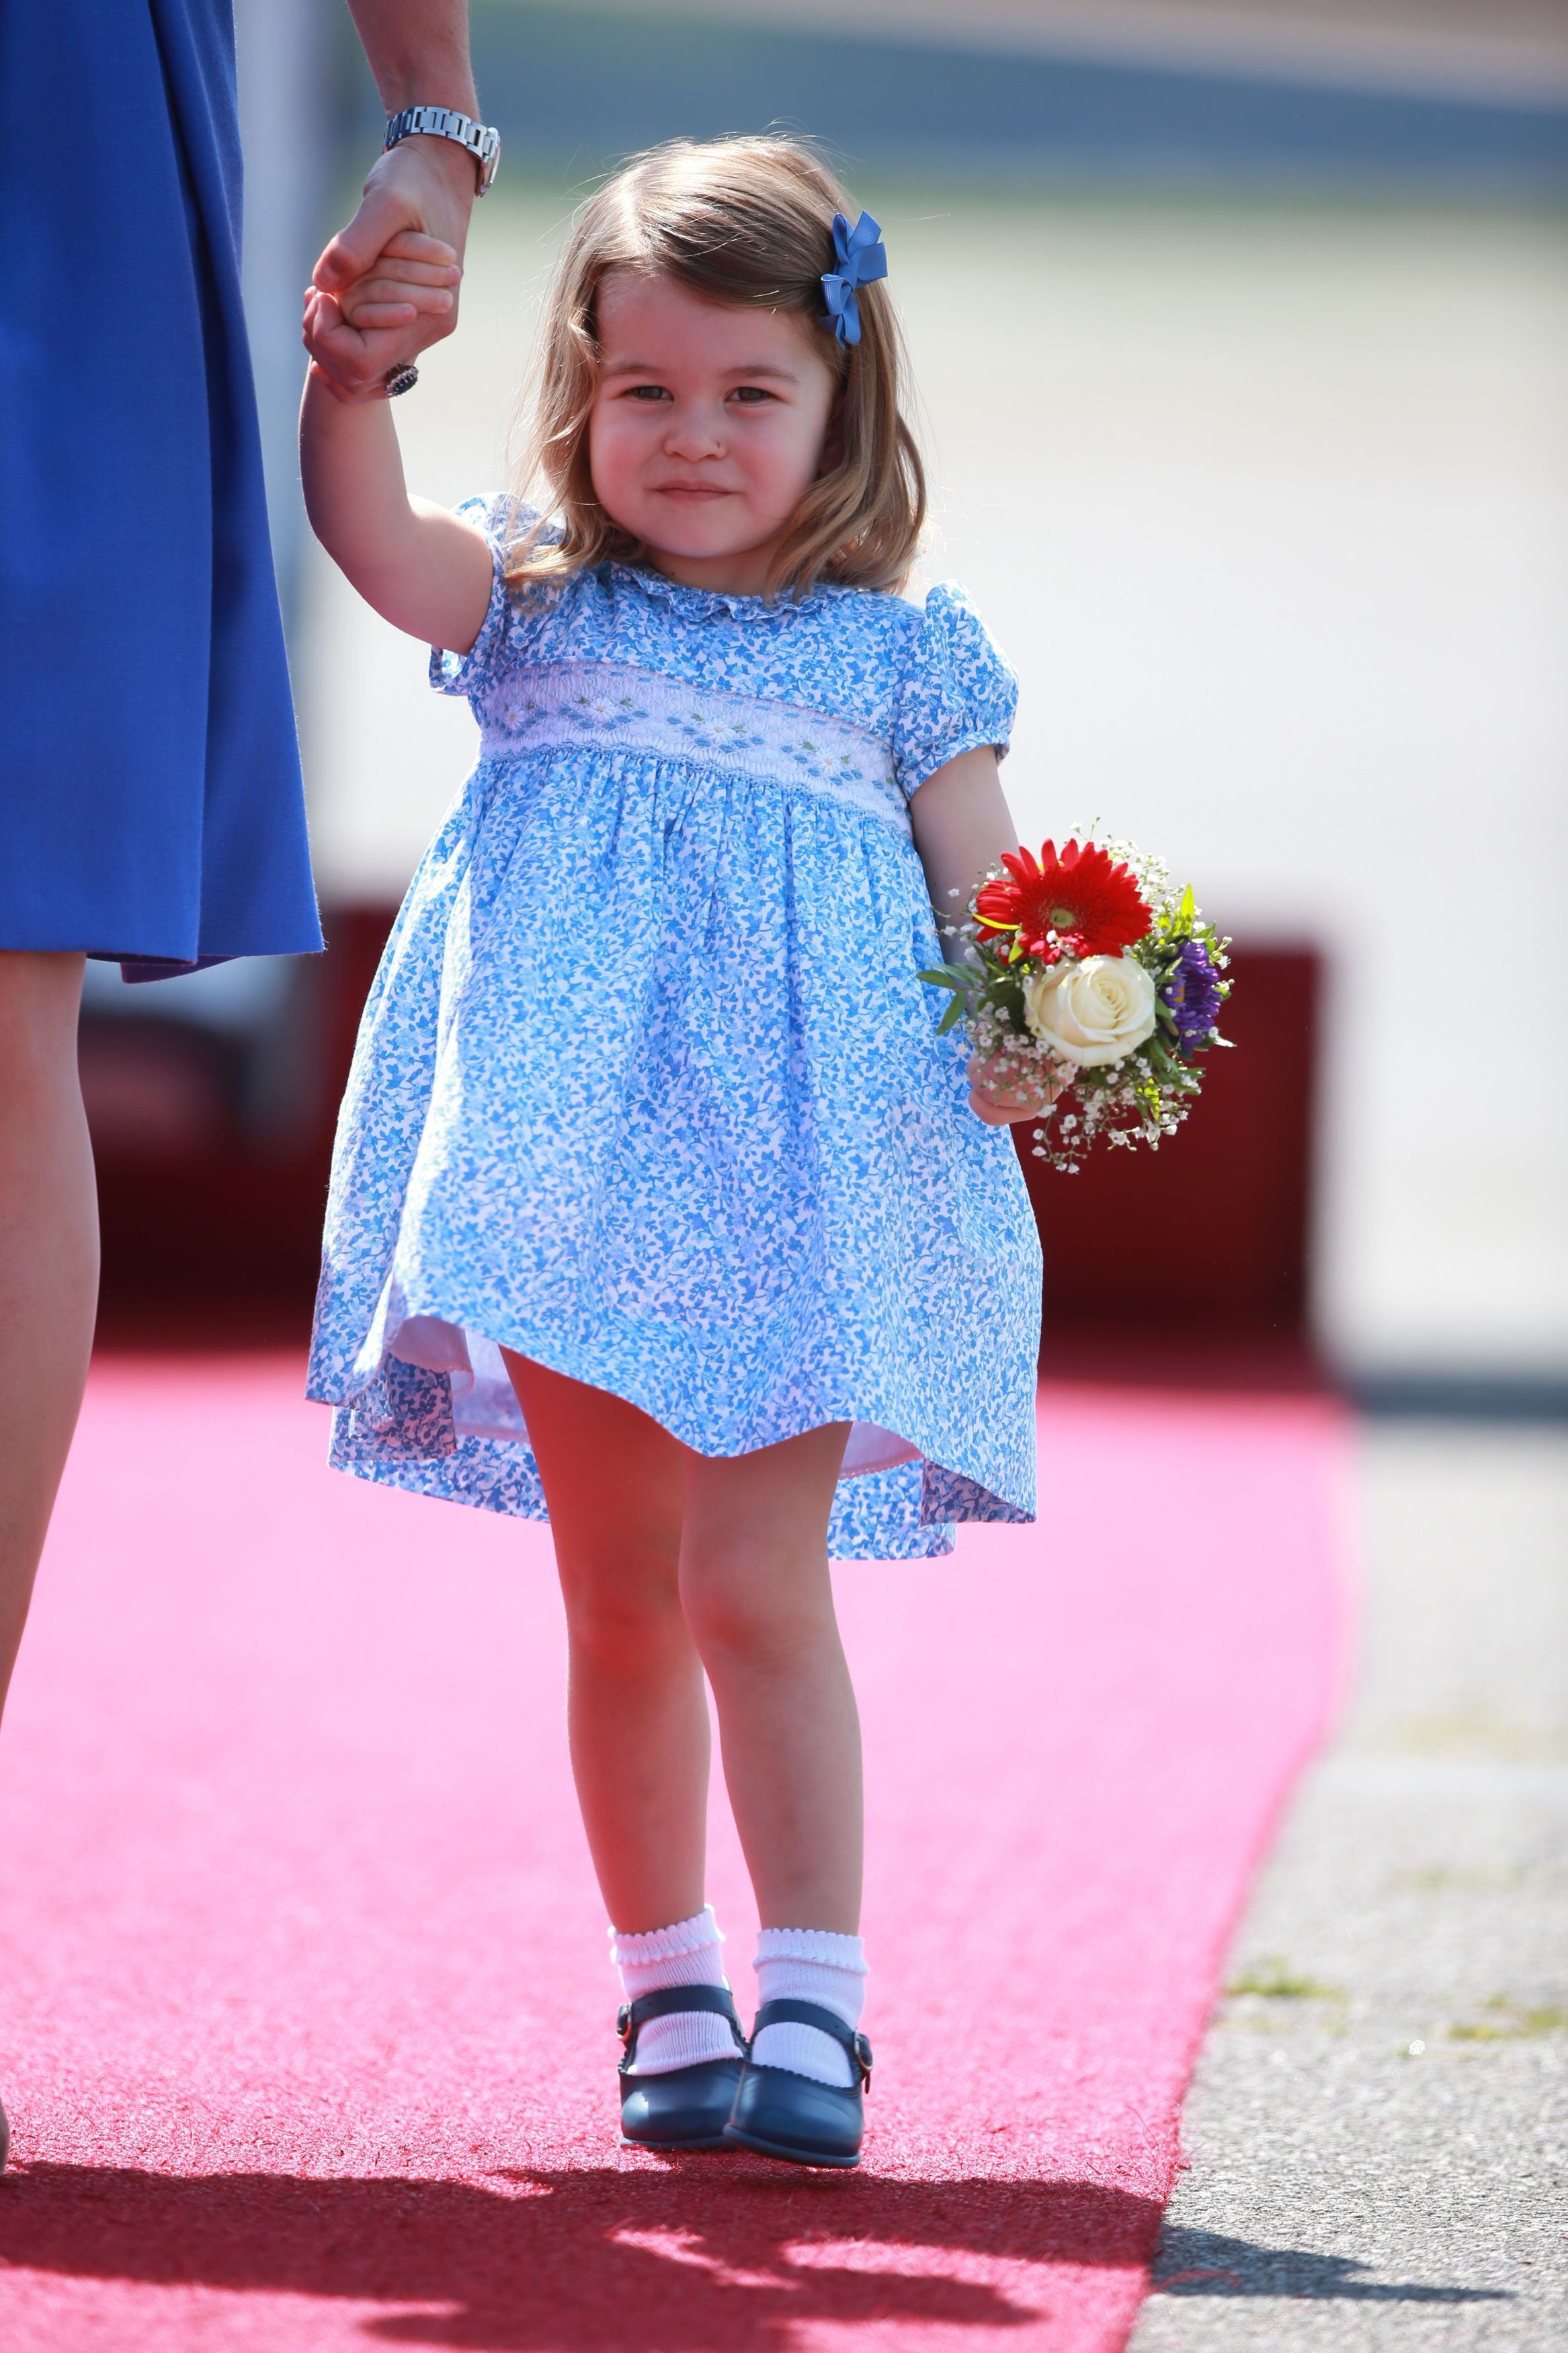 Princess Charlotte Described As 'Bossy' For Looking After Prince George: Here's Why That's